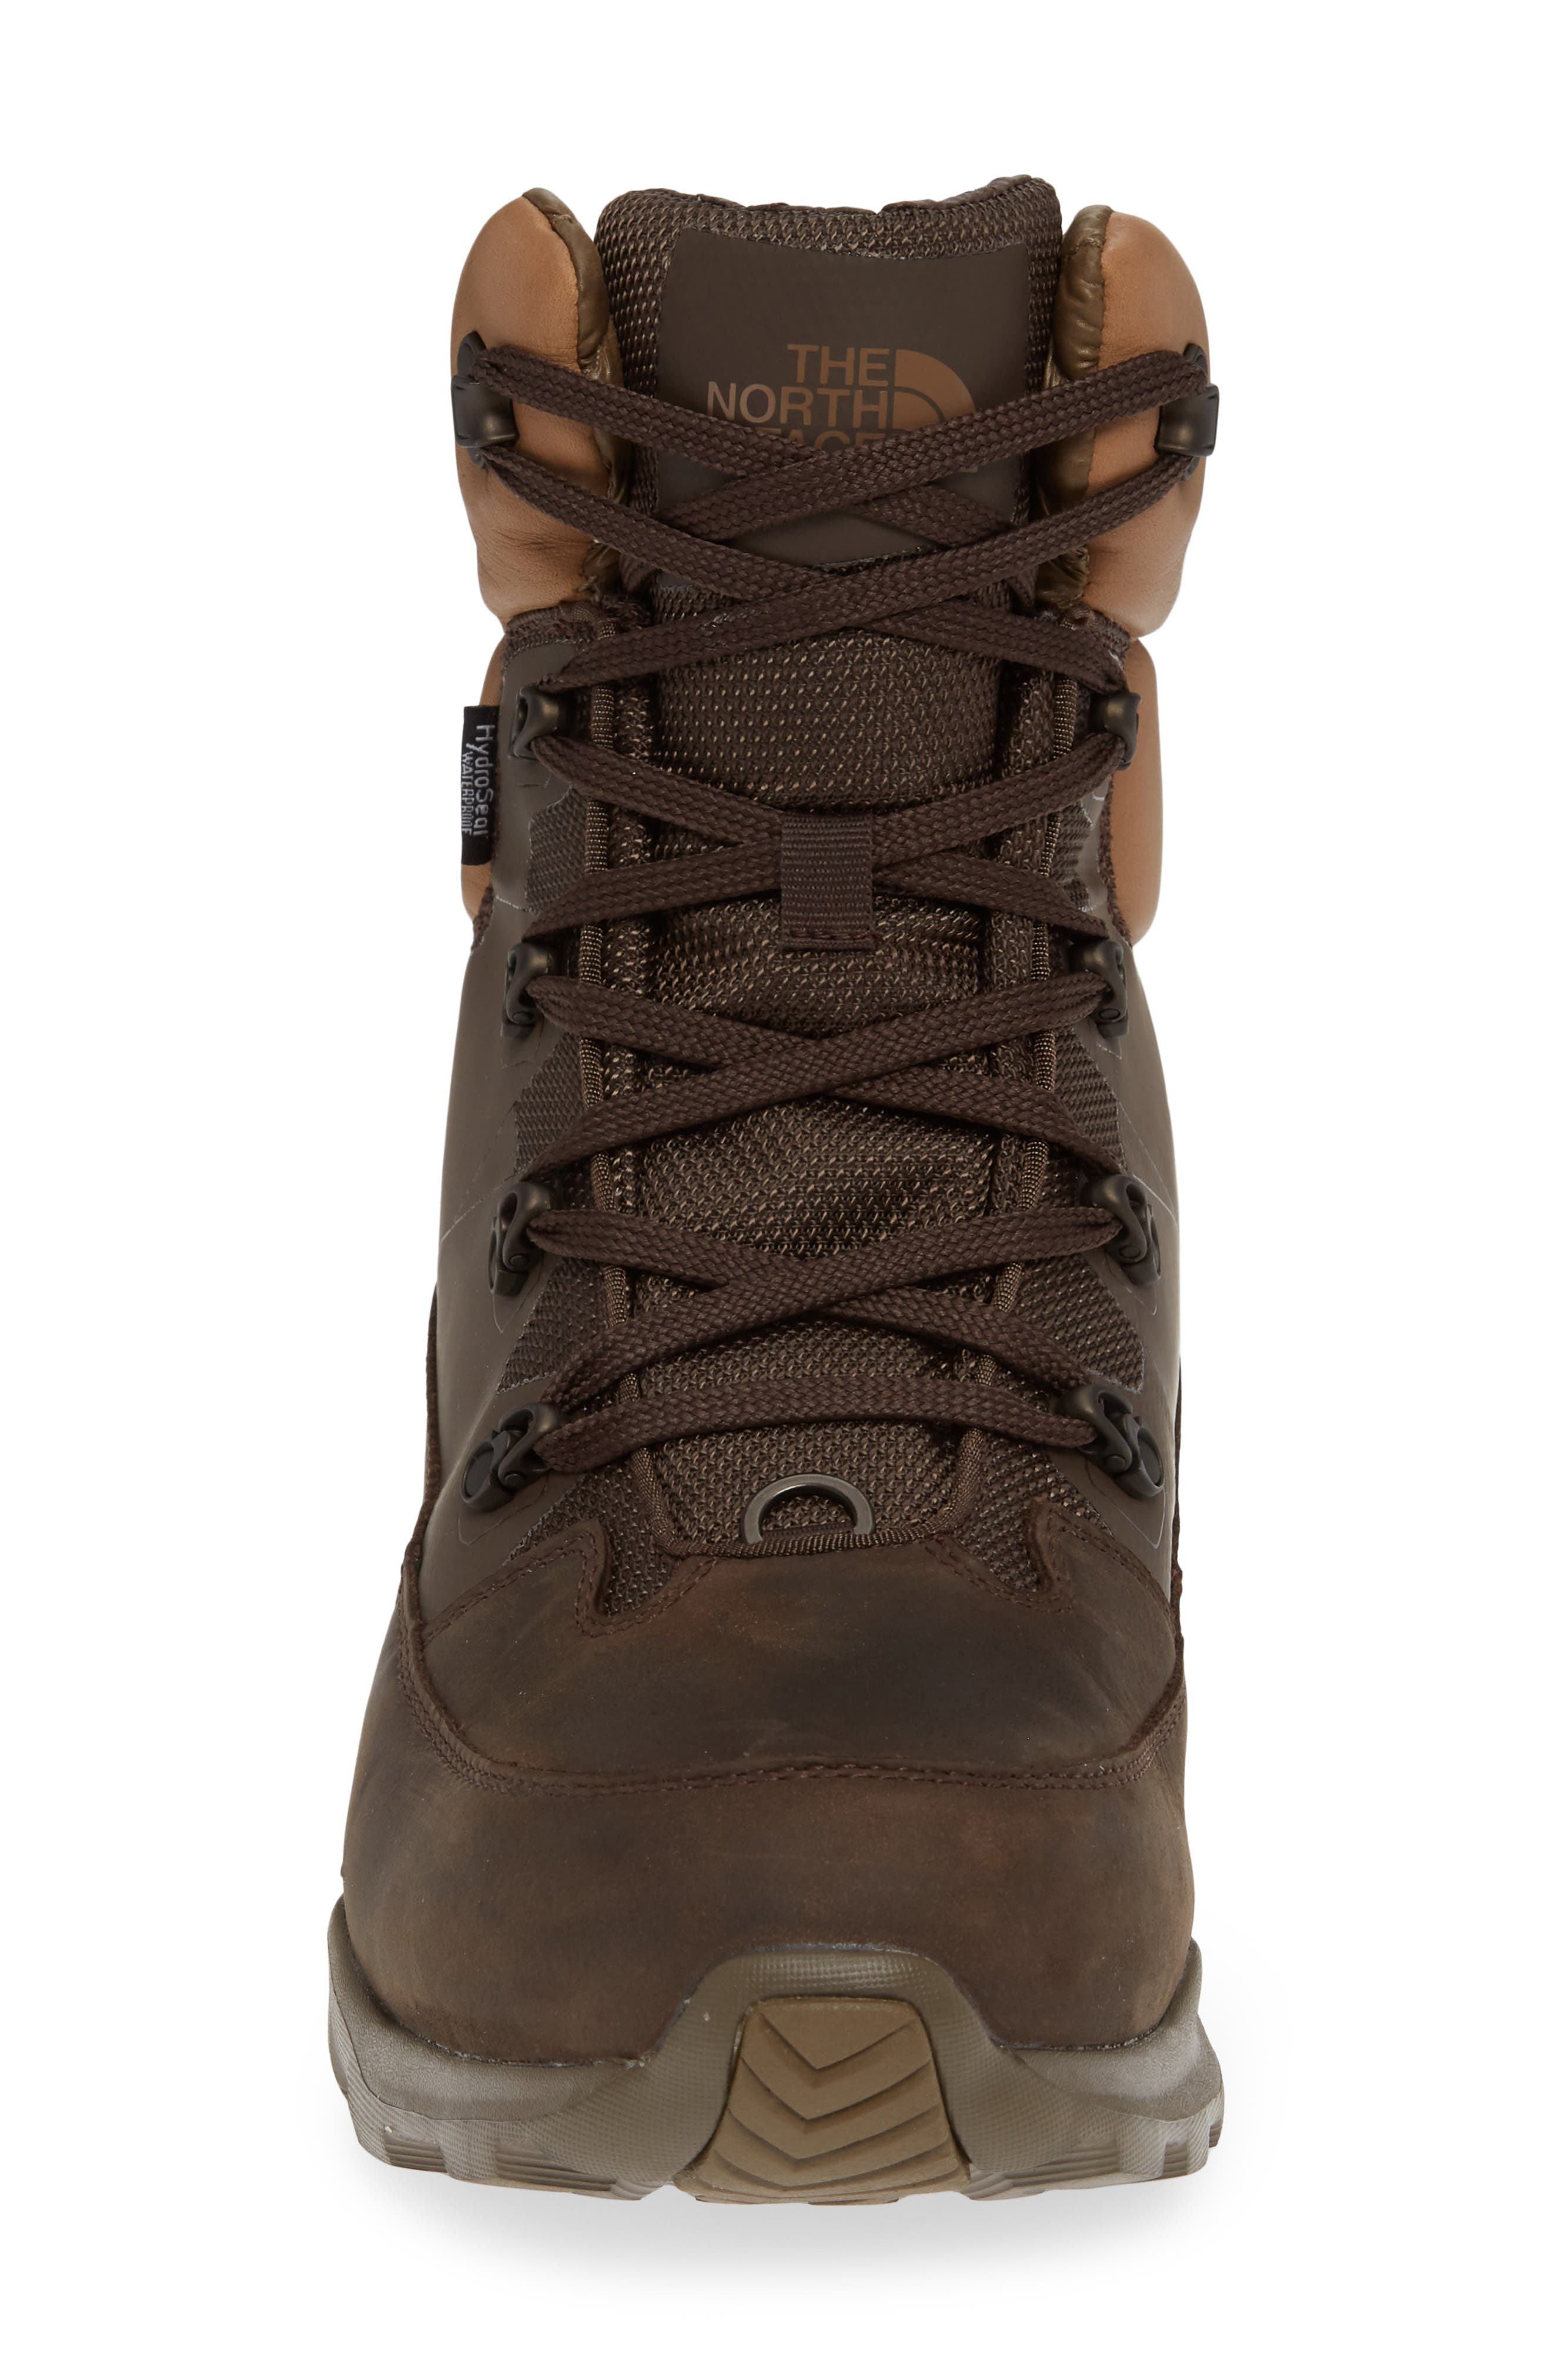 THE NORTH FACE,                             ThermoBall Lifty Snow Waterproof Boot,                             Alternate thumbnail 4, color,                             CHOCOLATE BROWN/ CARGO KHAKI